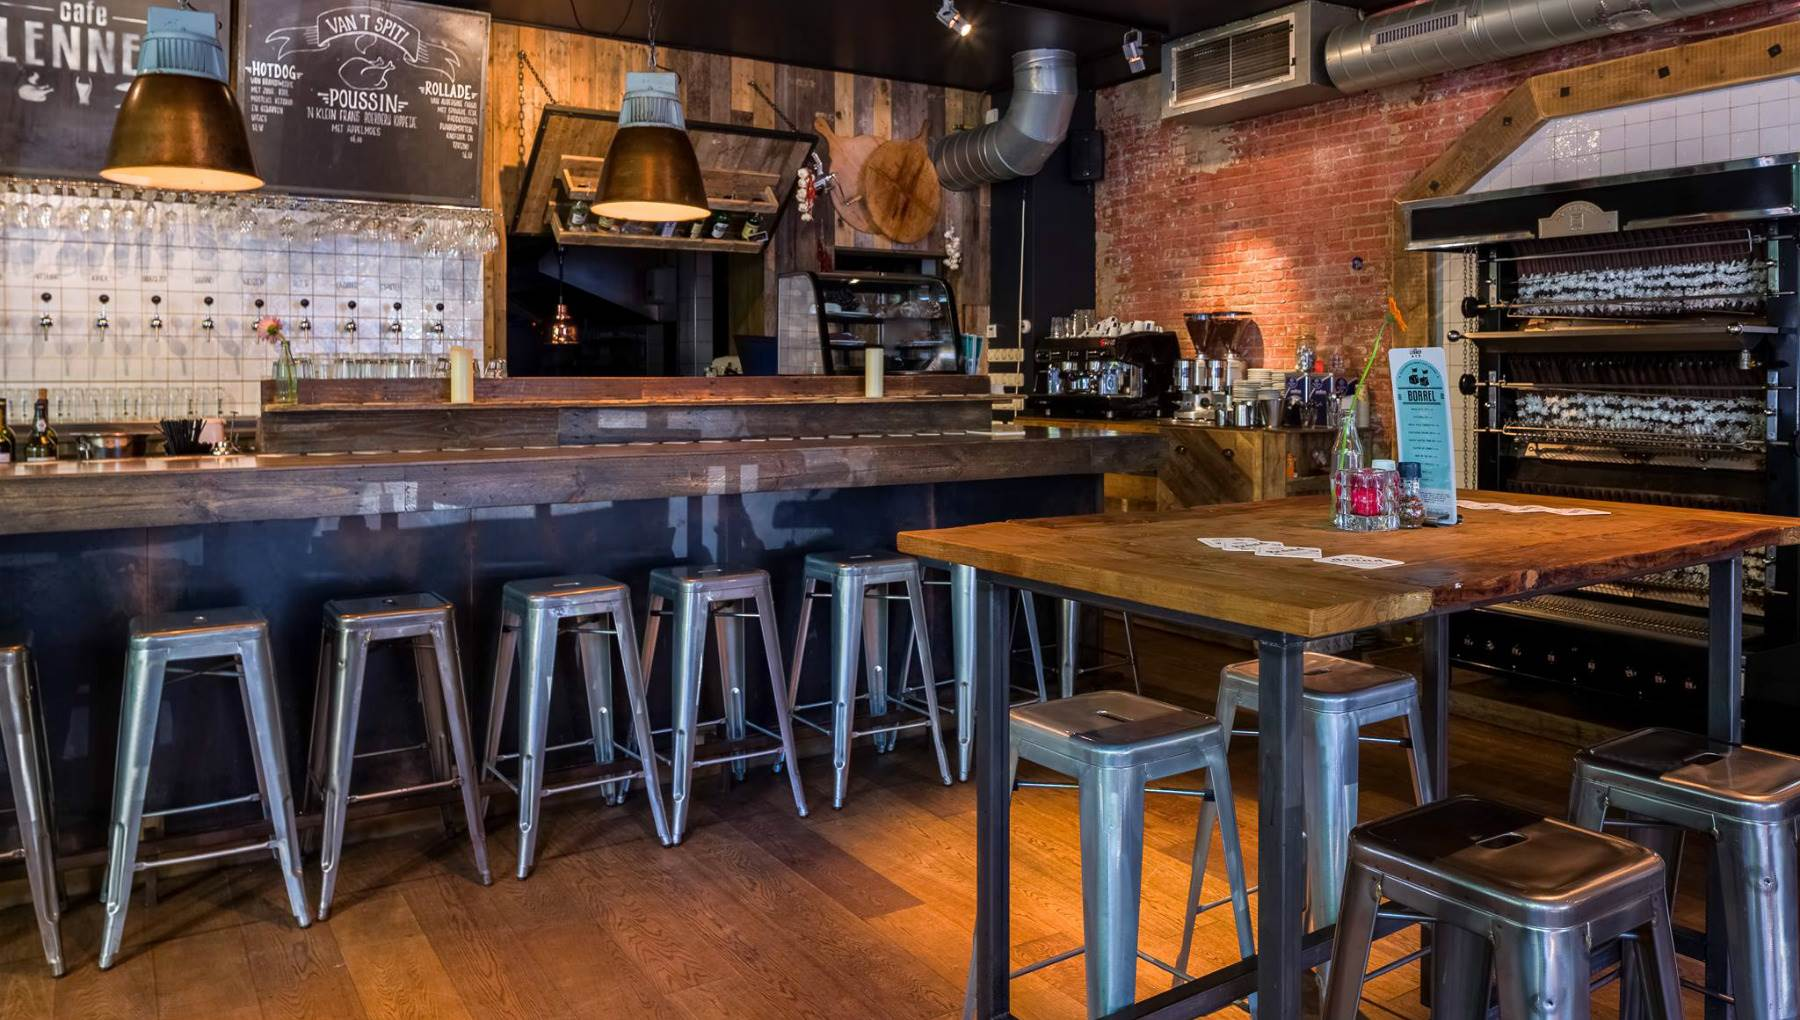 Cafe, restaurants, bars: a selection of sites